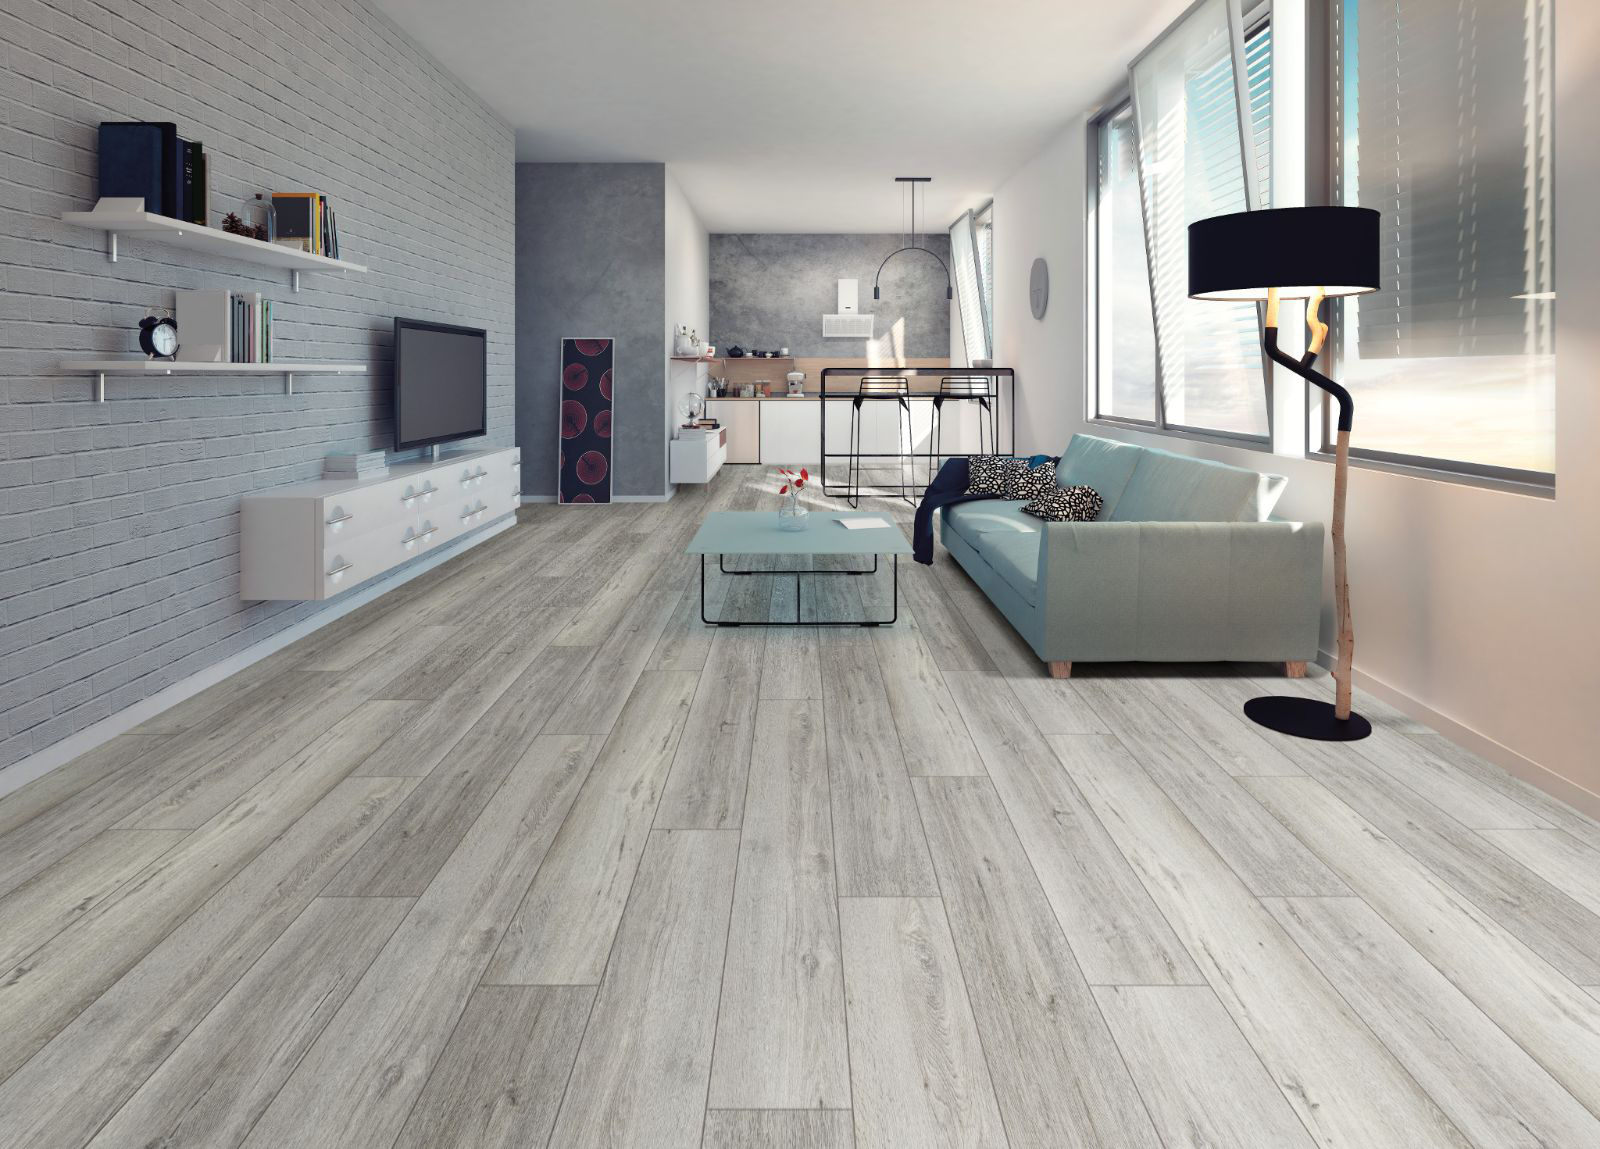 The Difference Between Spc Lock Floor And Wooden Floor